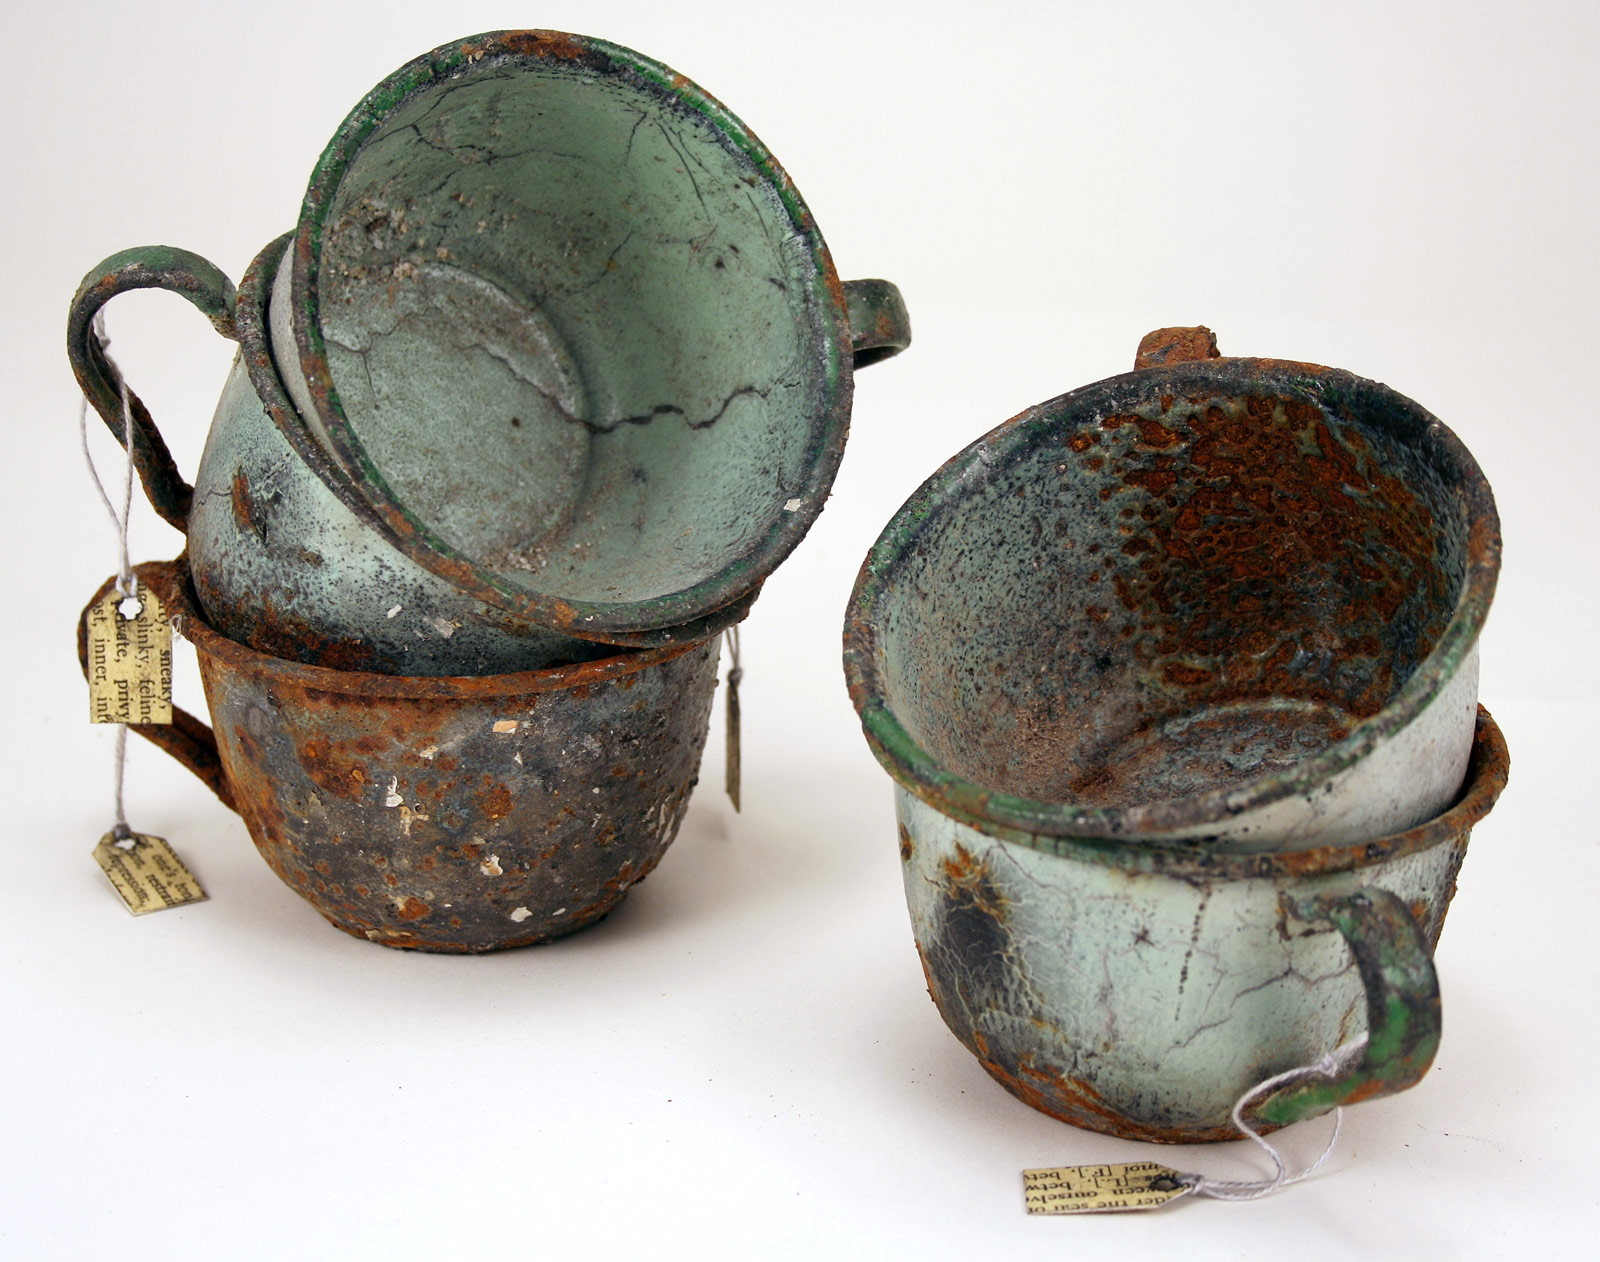 Marnette recalls things left unsaid: Five enamel cups